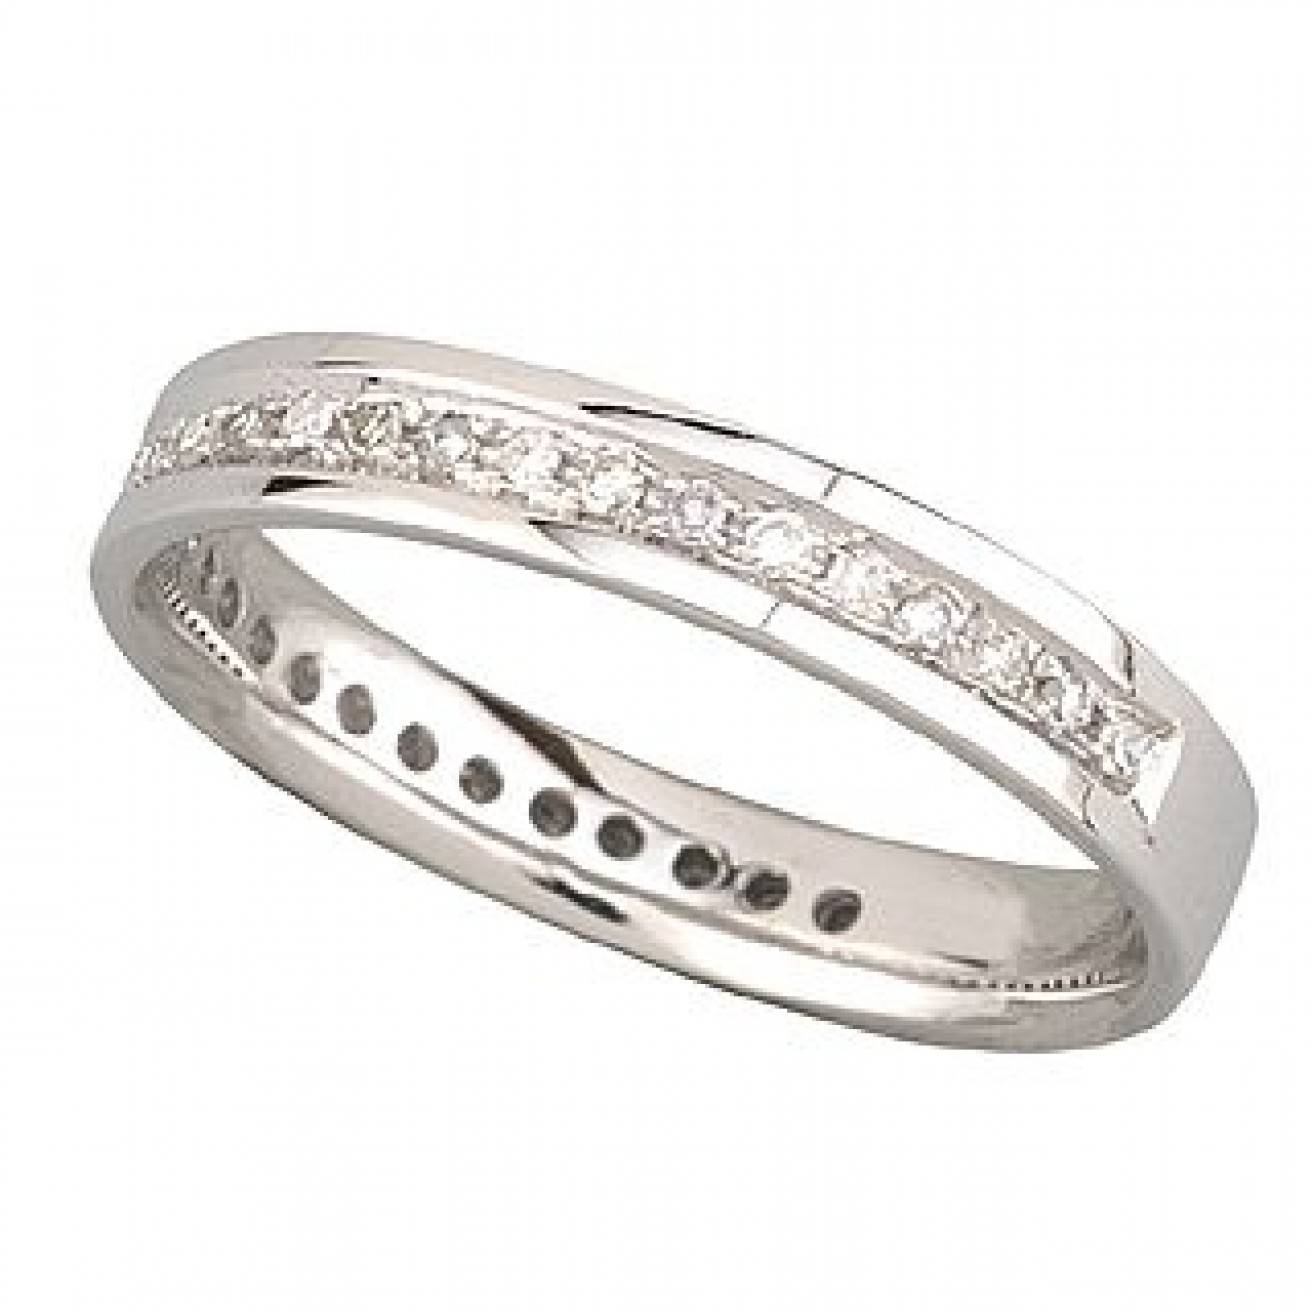 Buy White Gold Wedding Rings Online – Fraser Hart Within White Gold Wedding Rings With Diamonds (View 8 of 15)